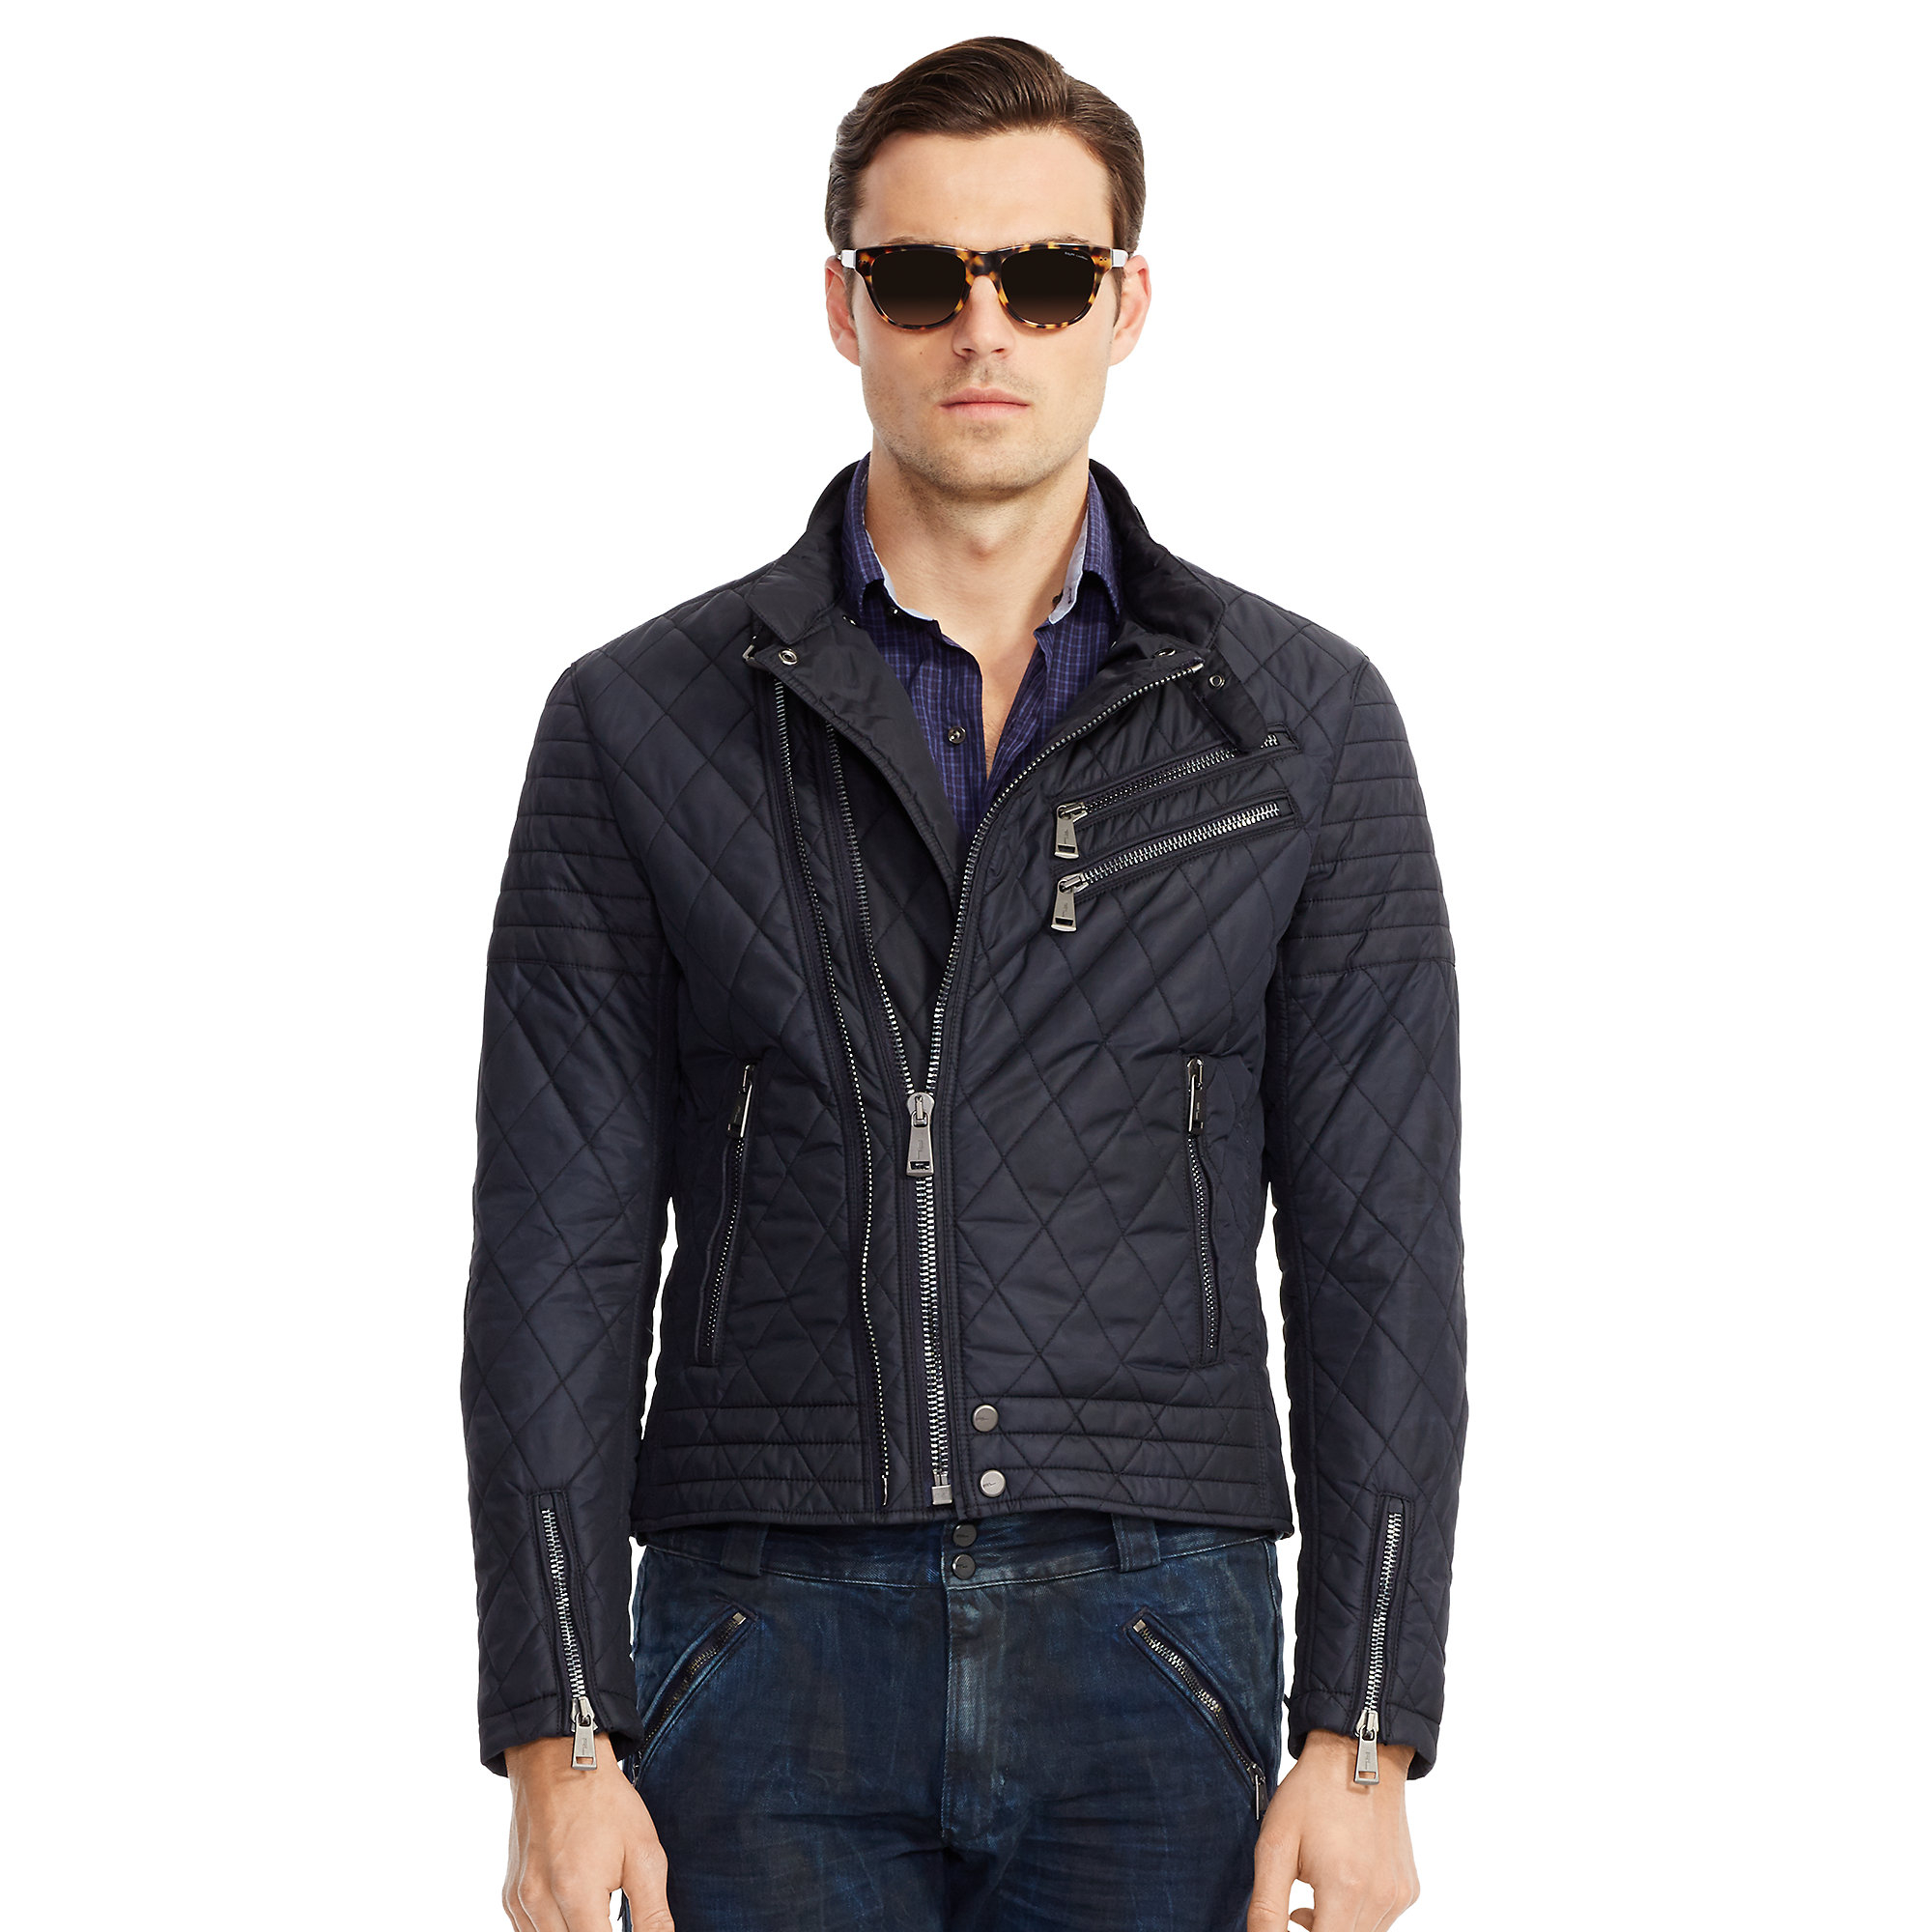 This is a photo of Nifty Ralph Lauren Black Label Commander Jacket